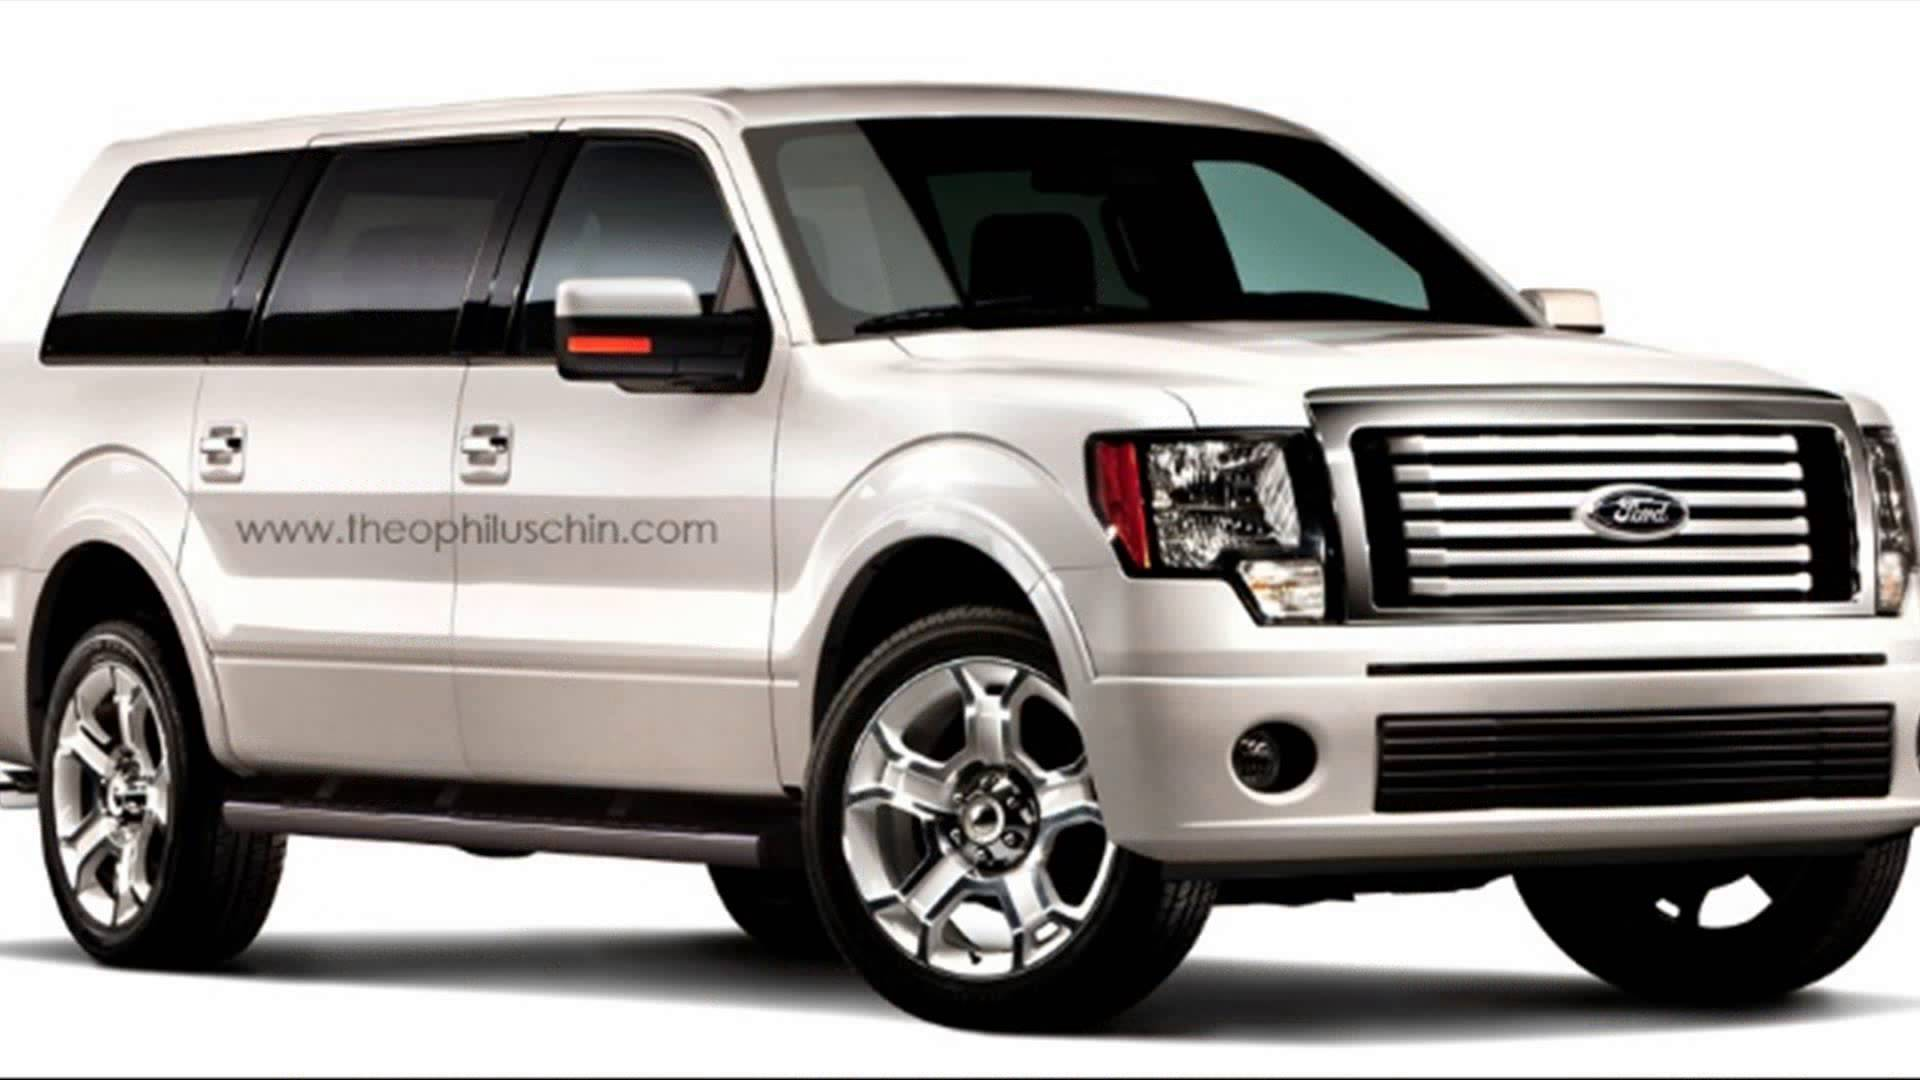 Ford Expedition 2014 #2